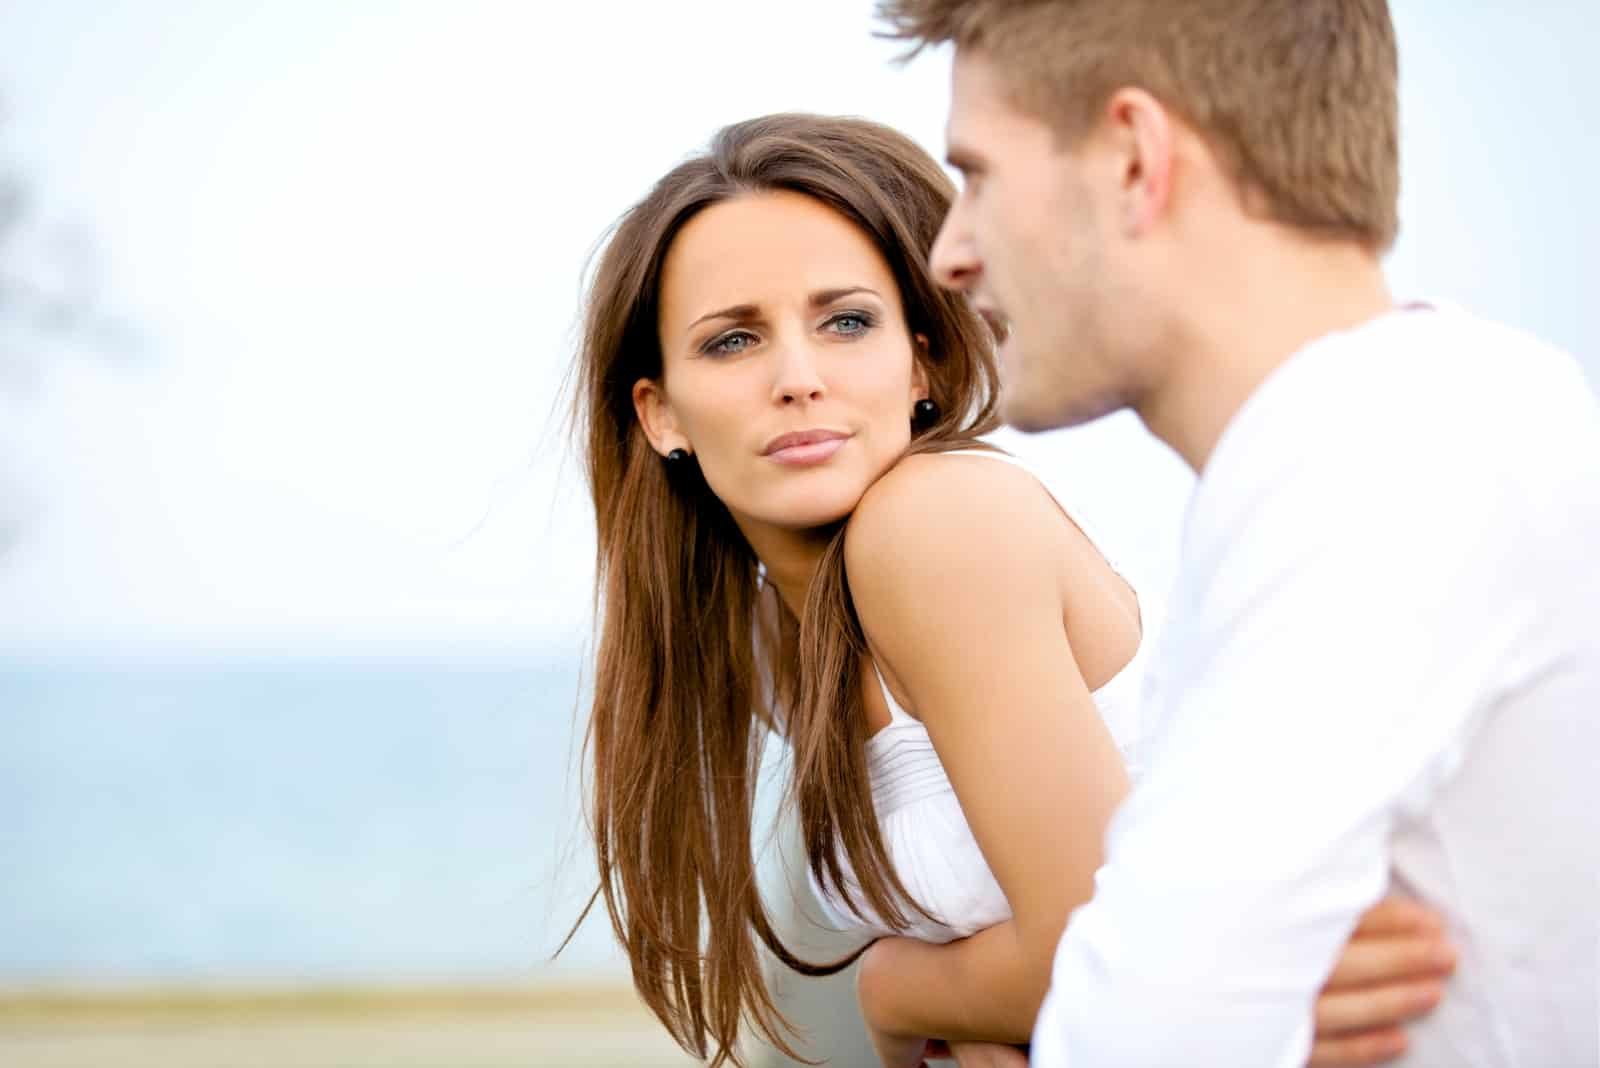 woman in white top listening to man